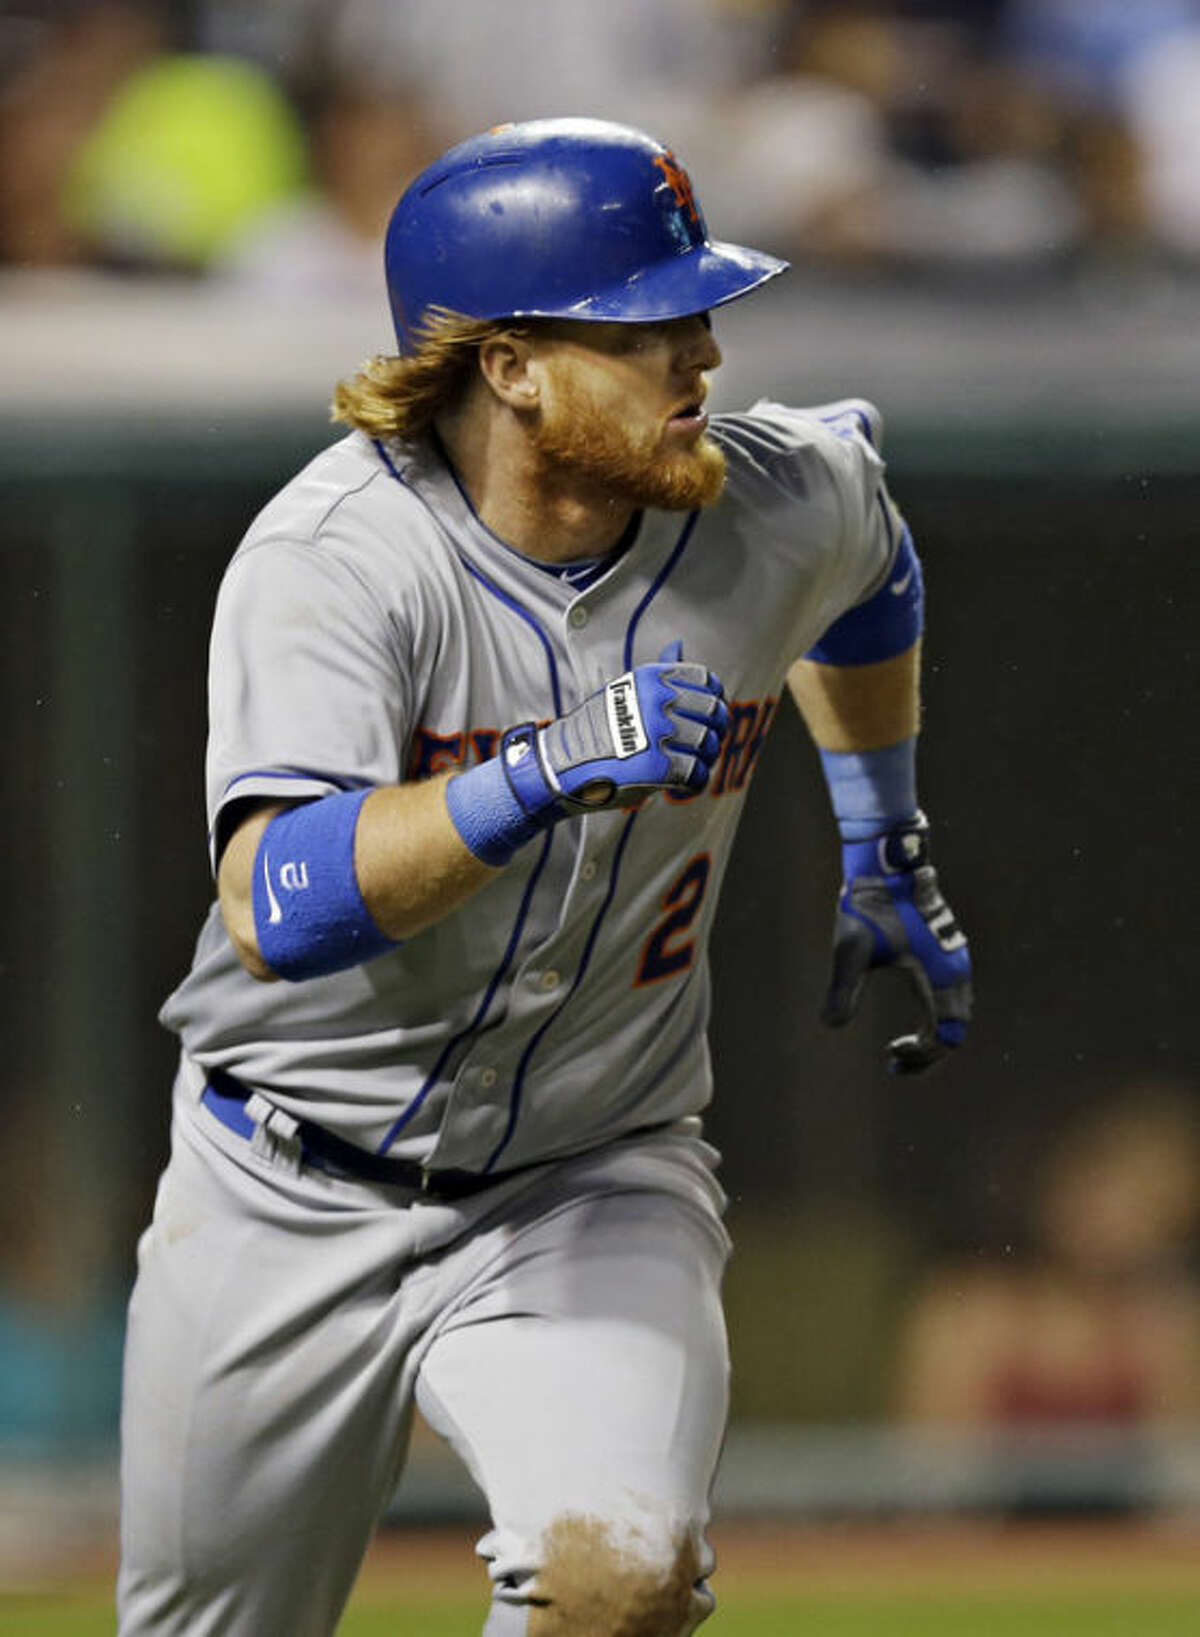 New York Mets' Justin Turner runs out a two-run double off Cleveland Indians relief pitcher Vinnie Pestano in the sixth inning of a baseball game Saturday, Sept. 7, 2013, in Cleveland. (AP Photo/Mark Duncan)